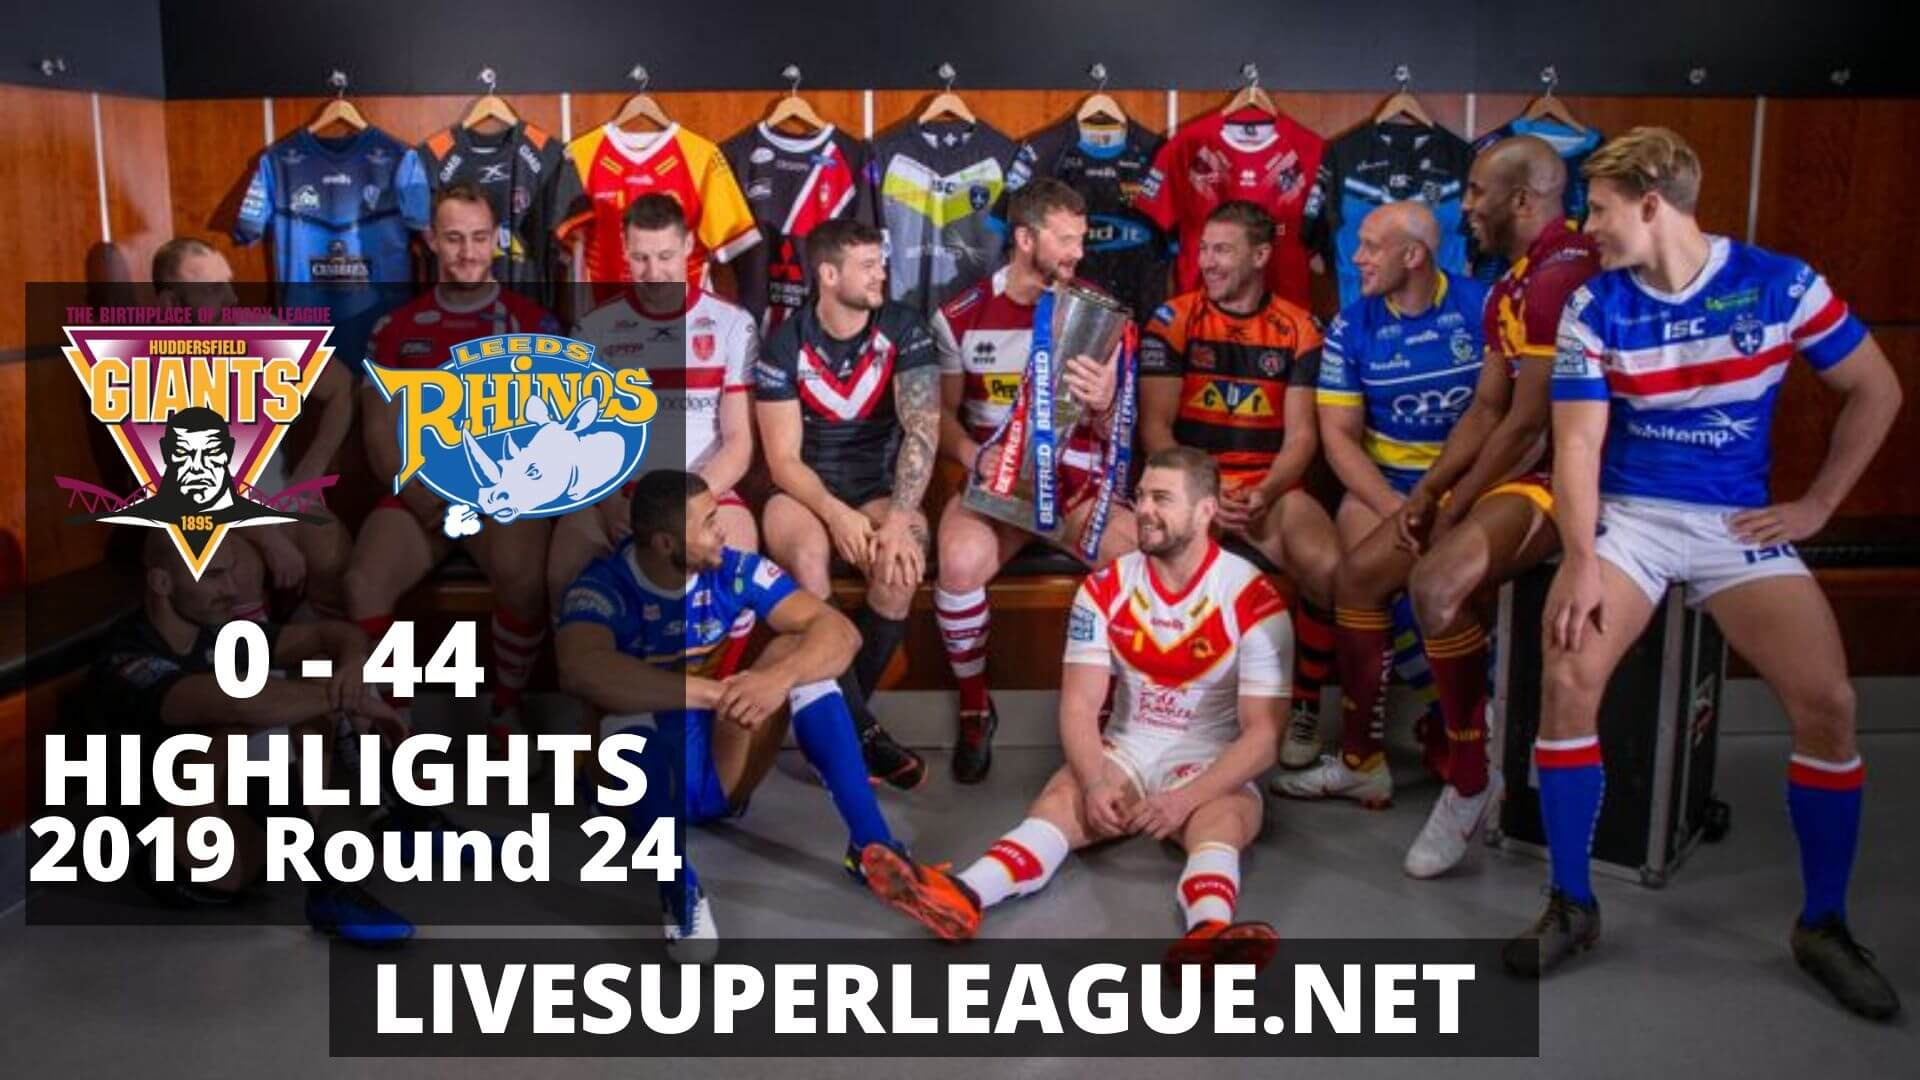 Huddersfield Giants Vs Leeds Rhinos Highlights 2019 Round 24